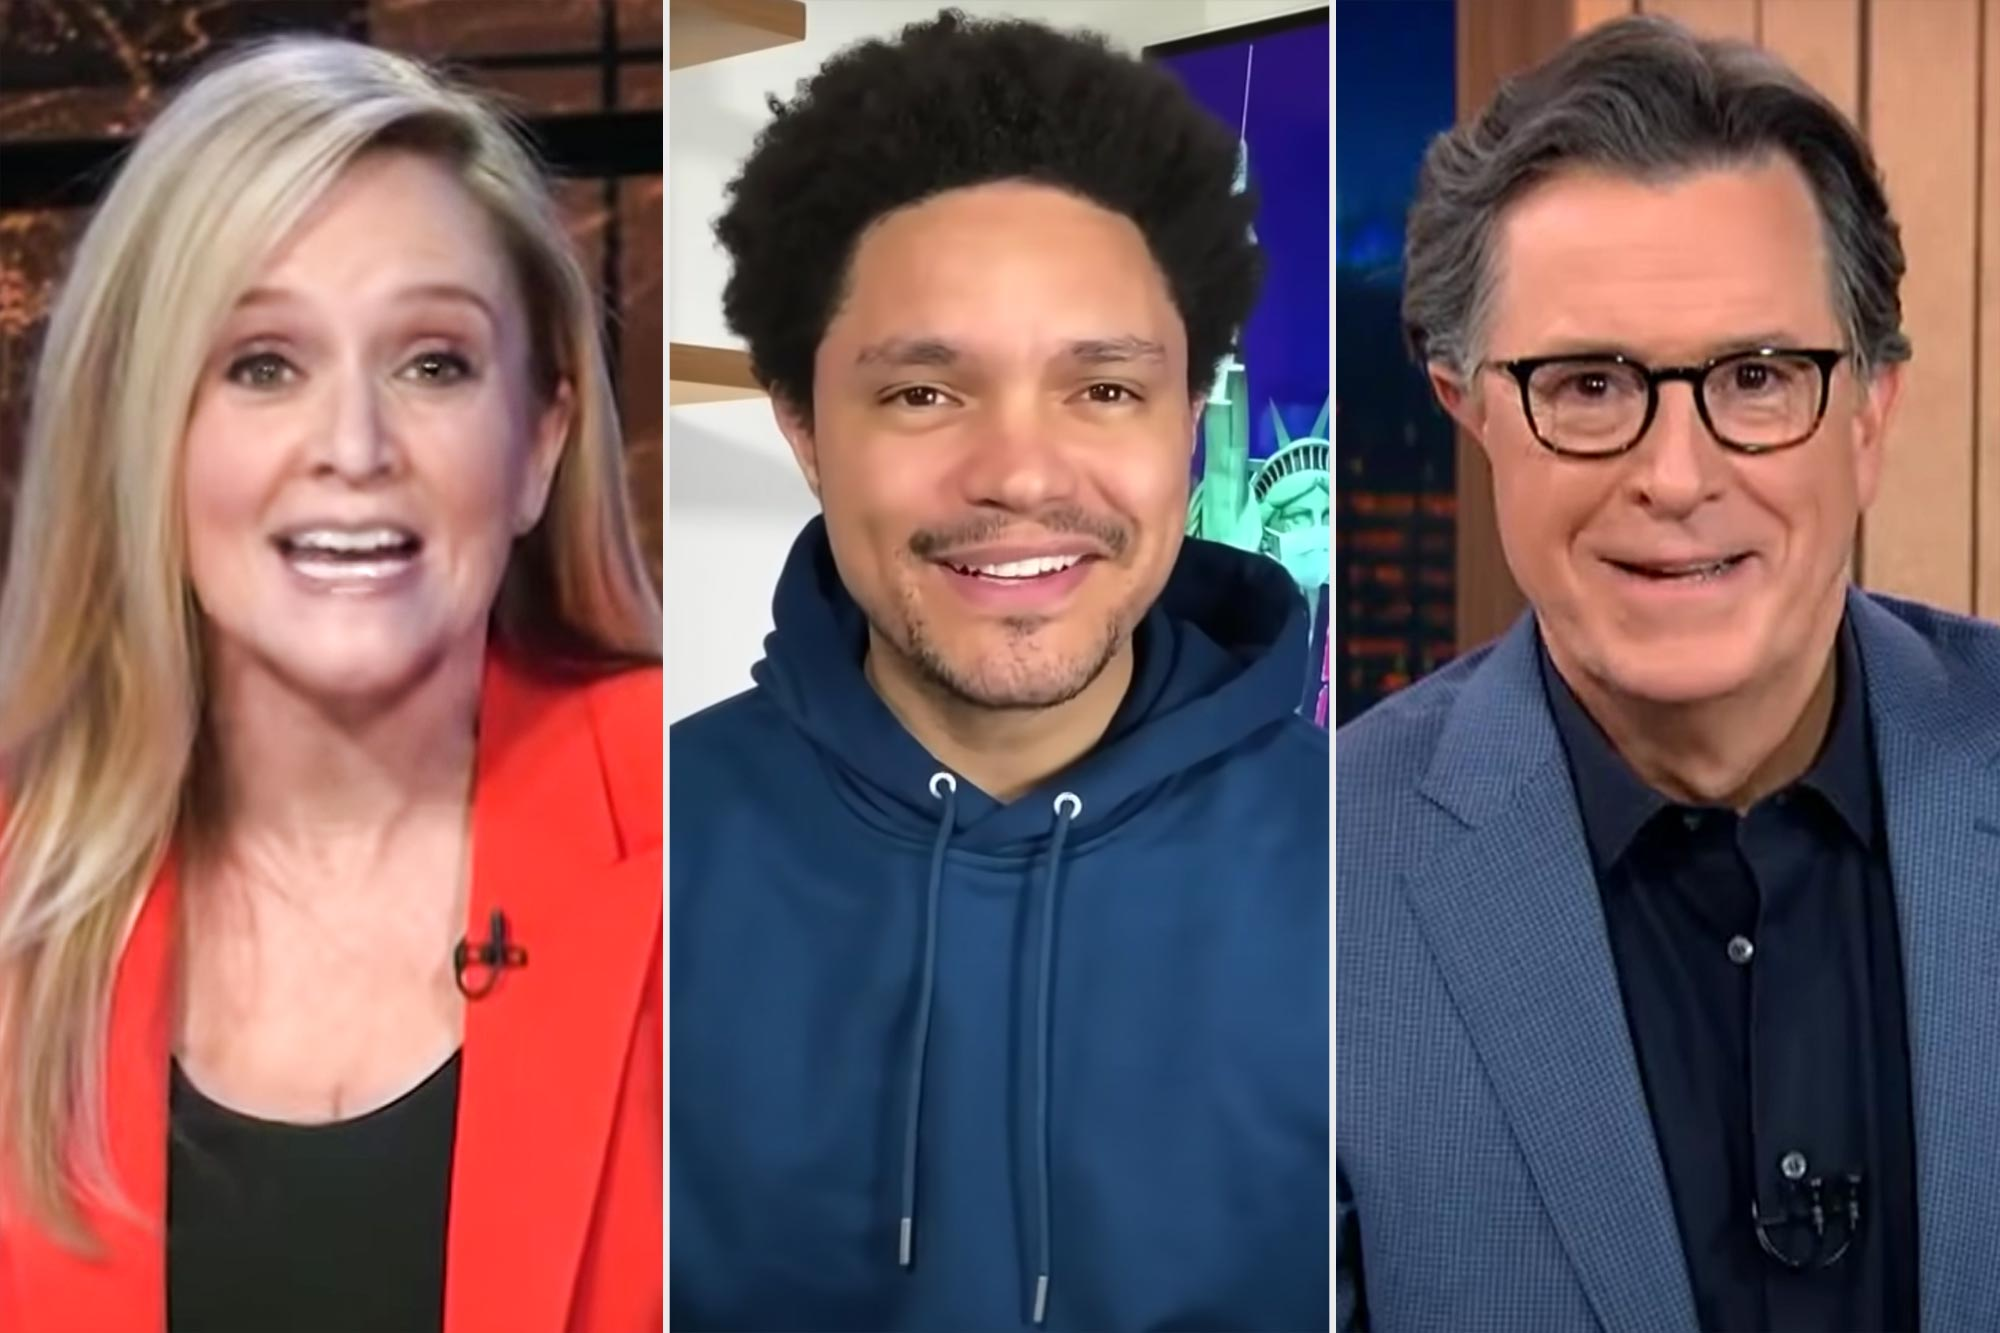 Samantha Bee, Trevor Noah, and Stephen Colbert